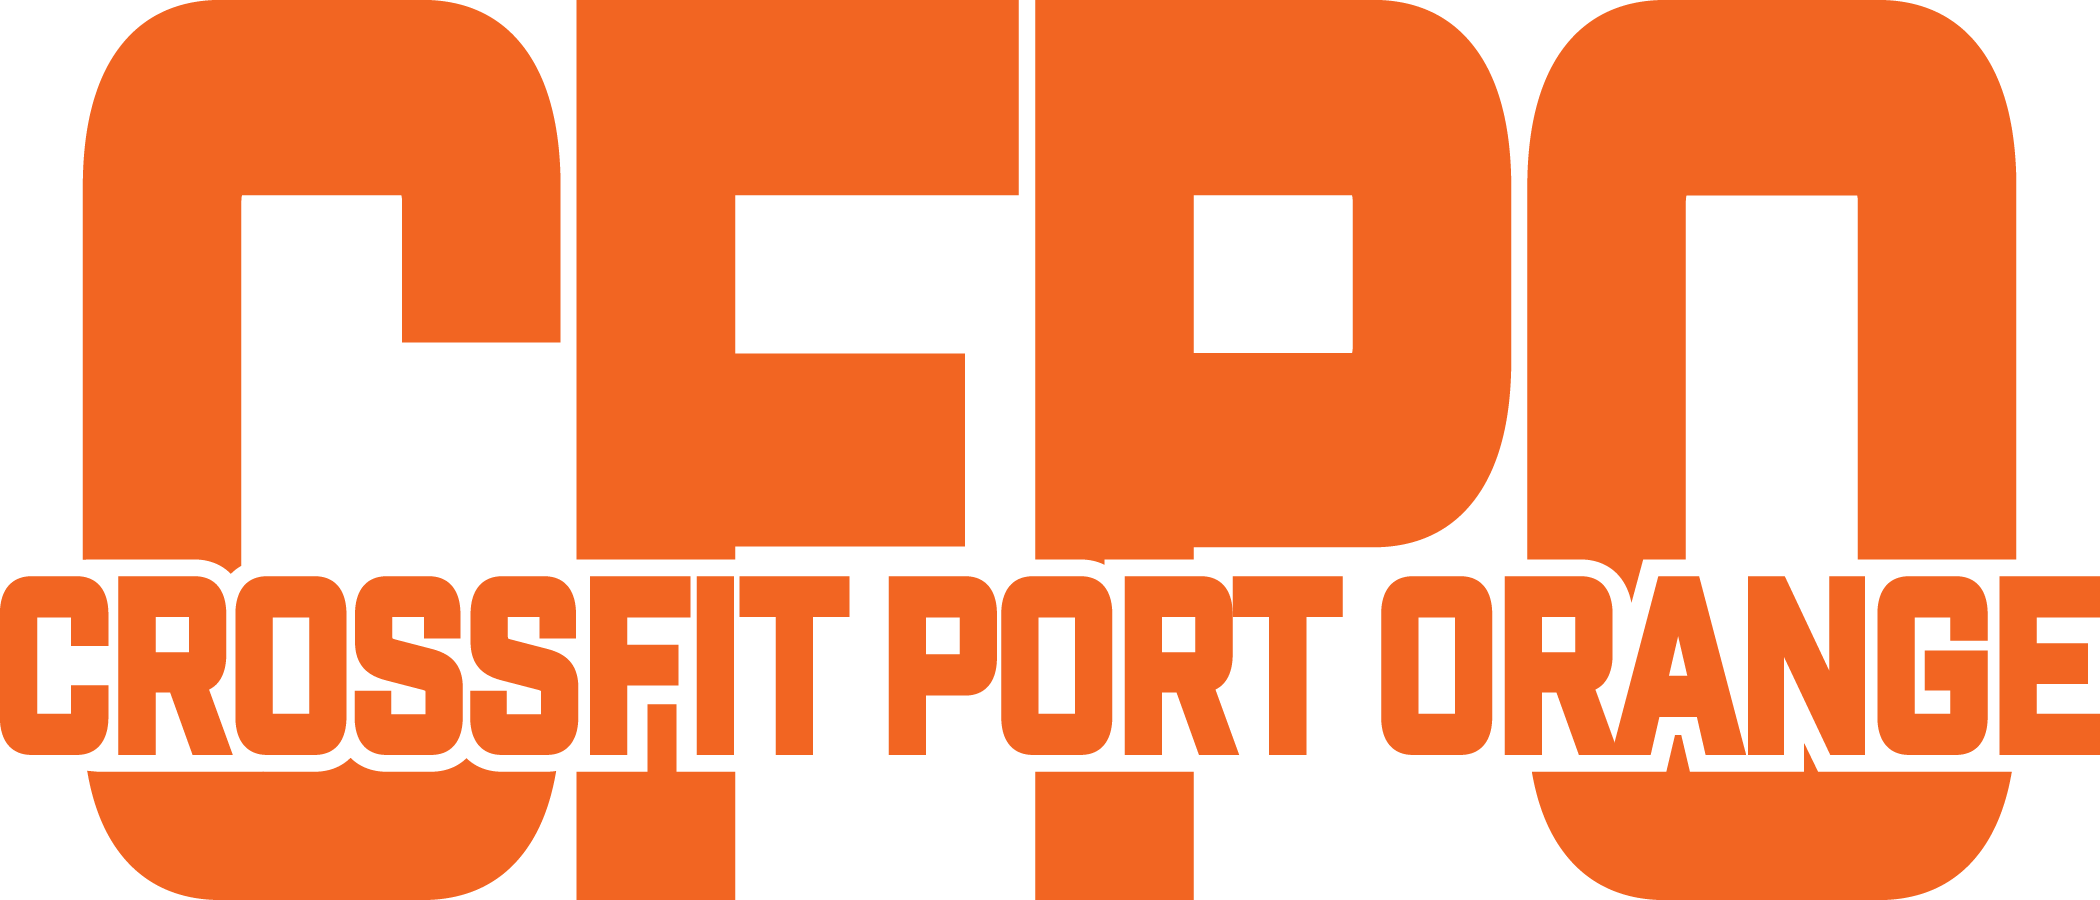 Crossfit Port Orange logo